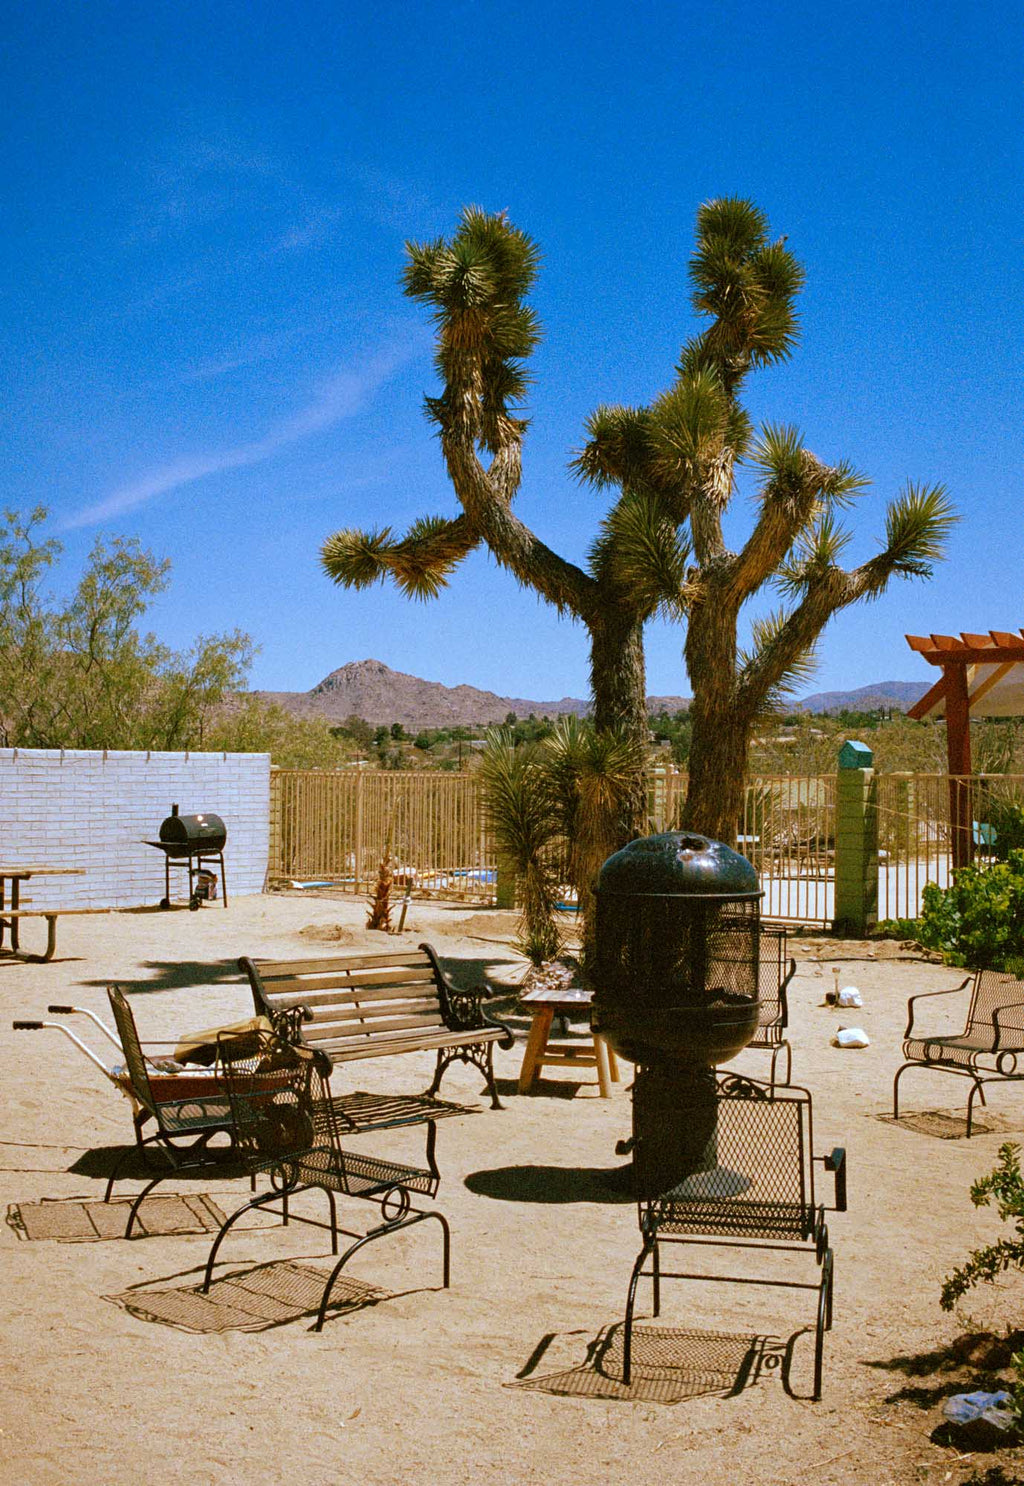 JOSHUA TREE MOTEL #1